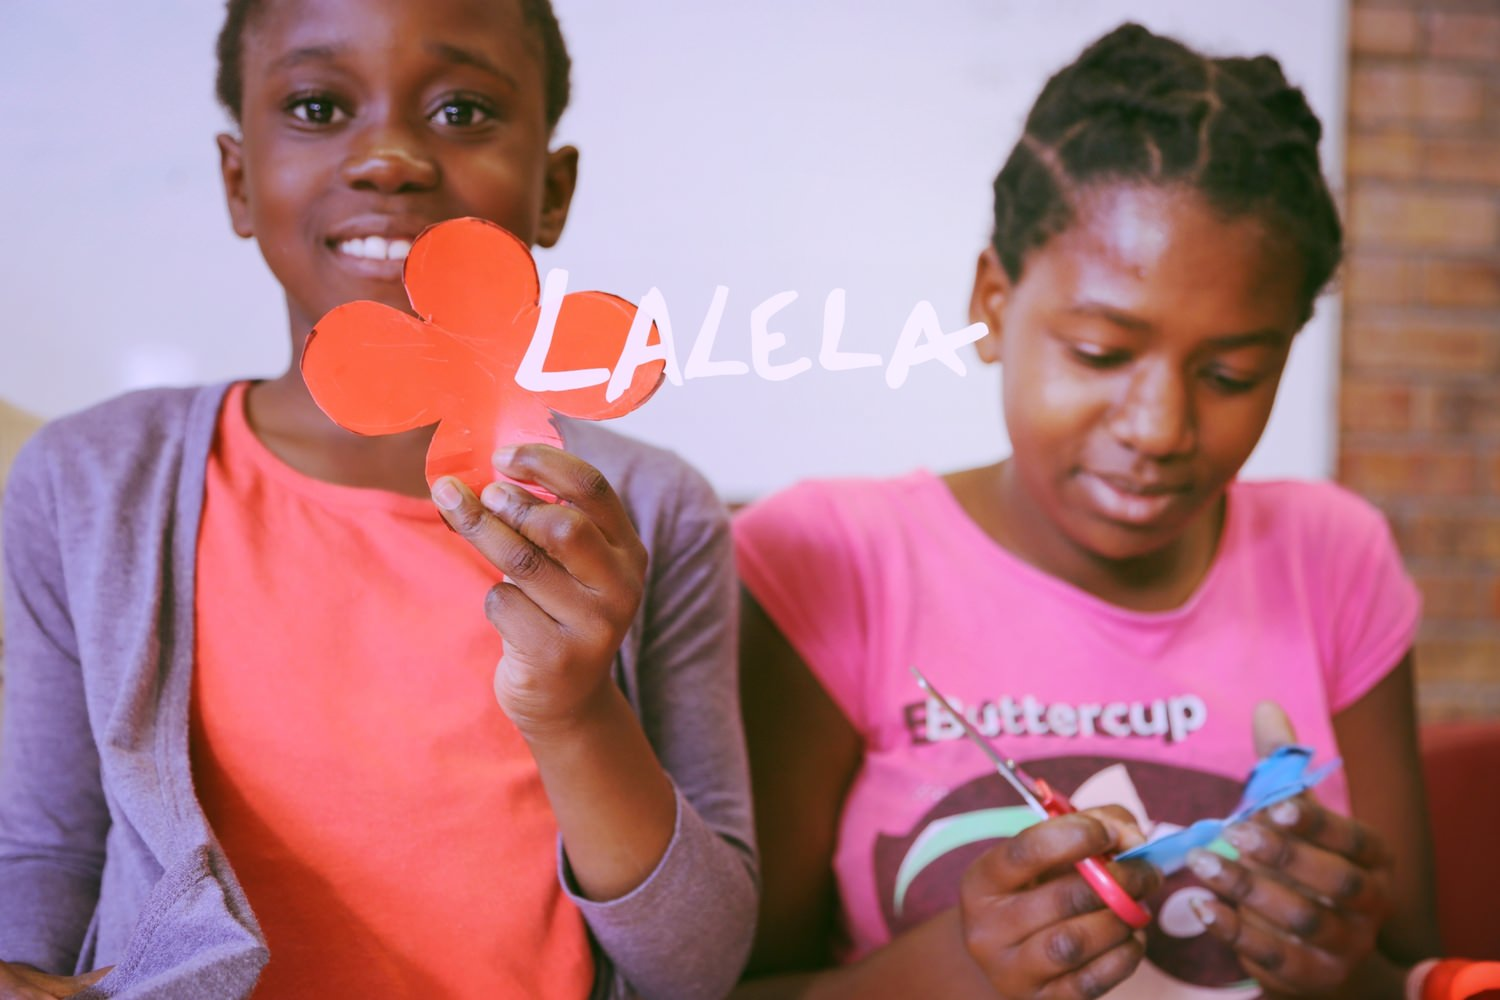 This year Life of Colour's charity donation was made to LALELA